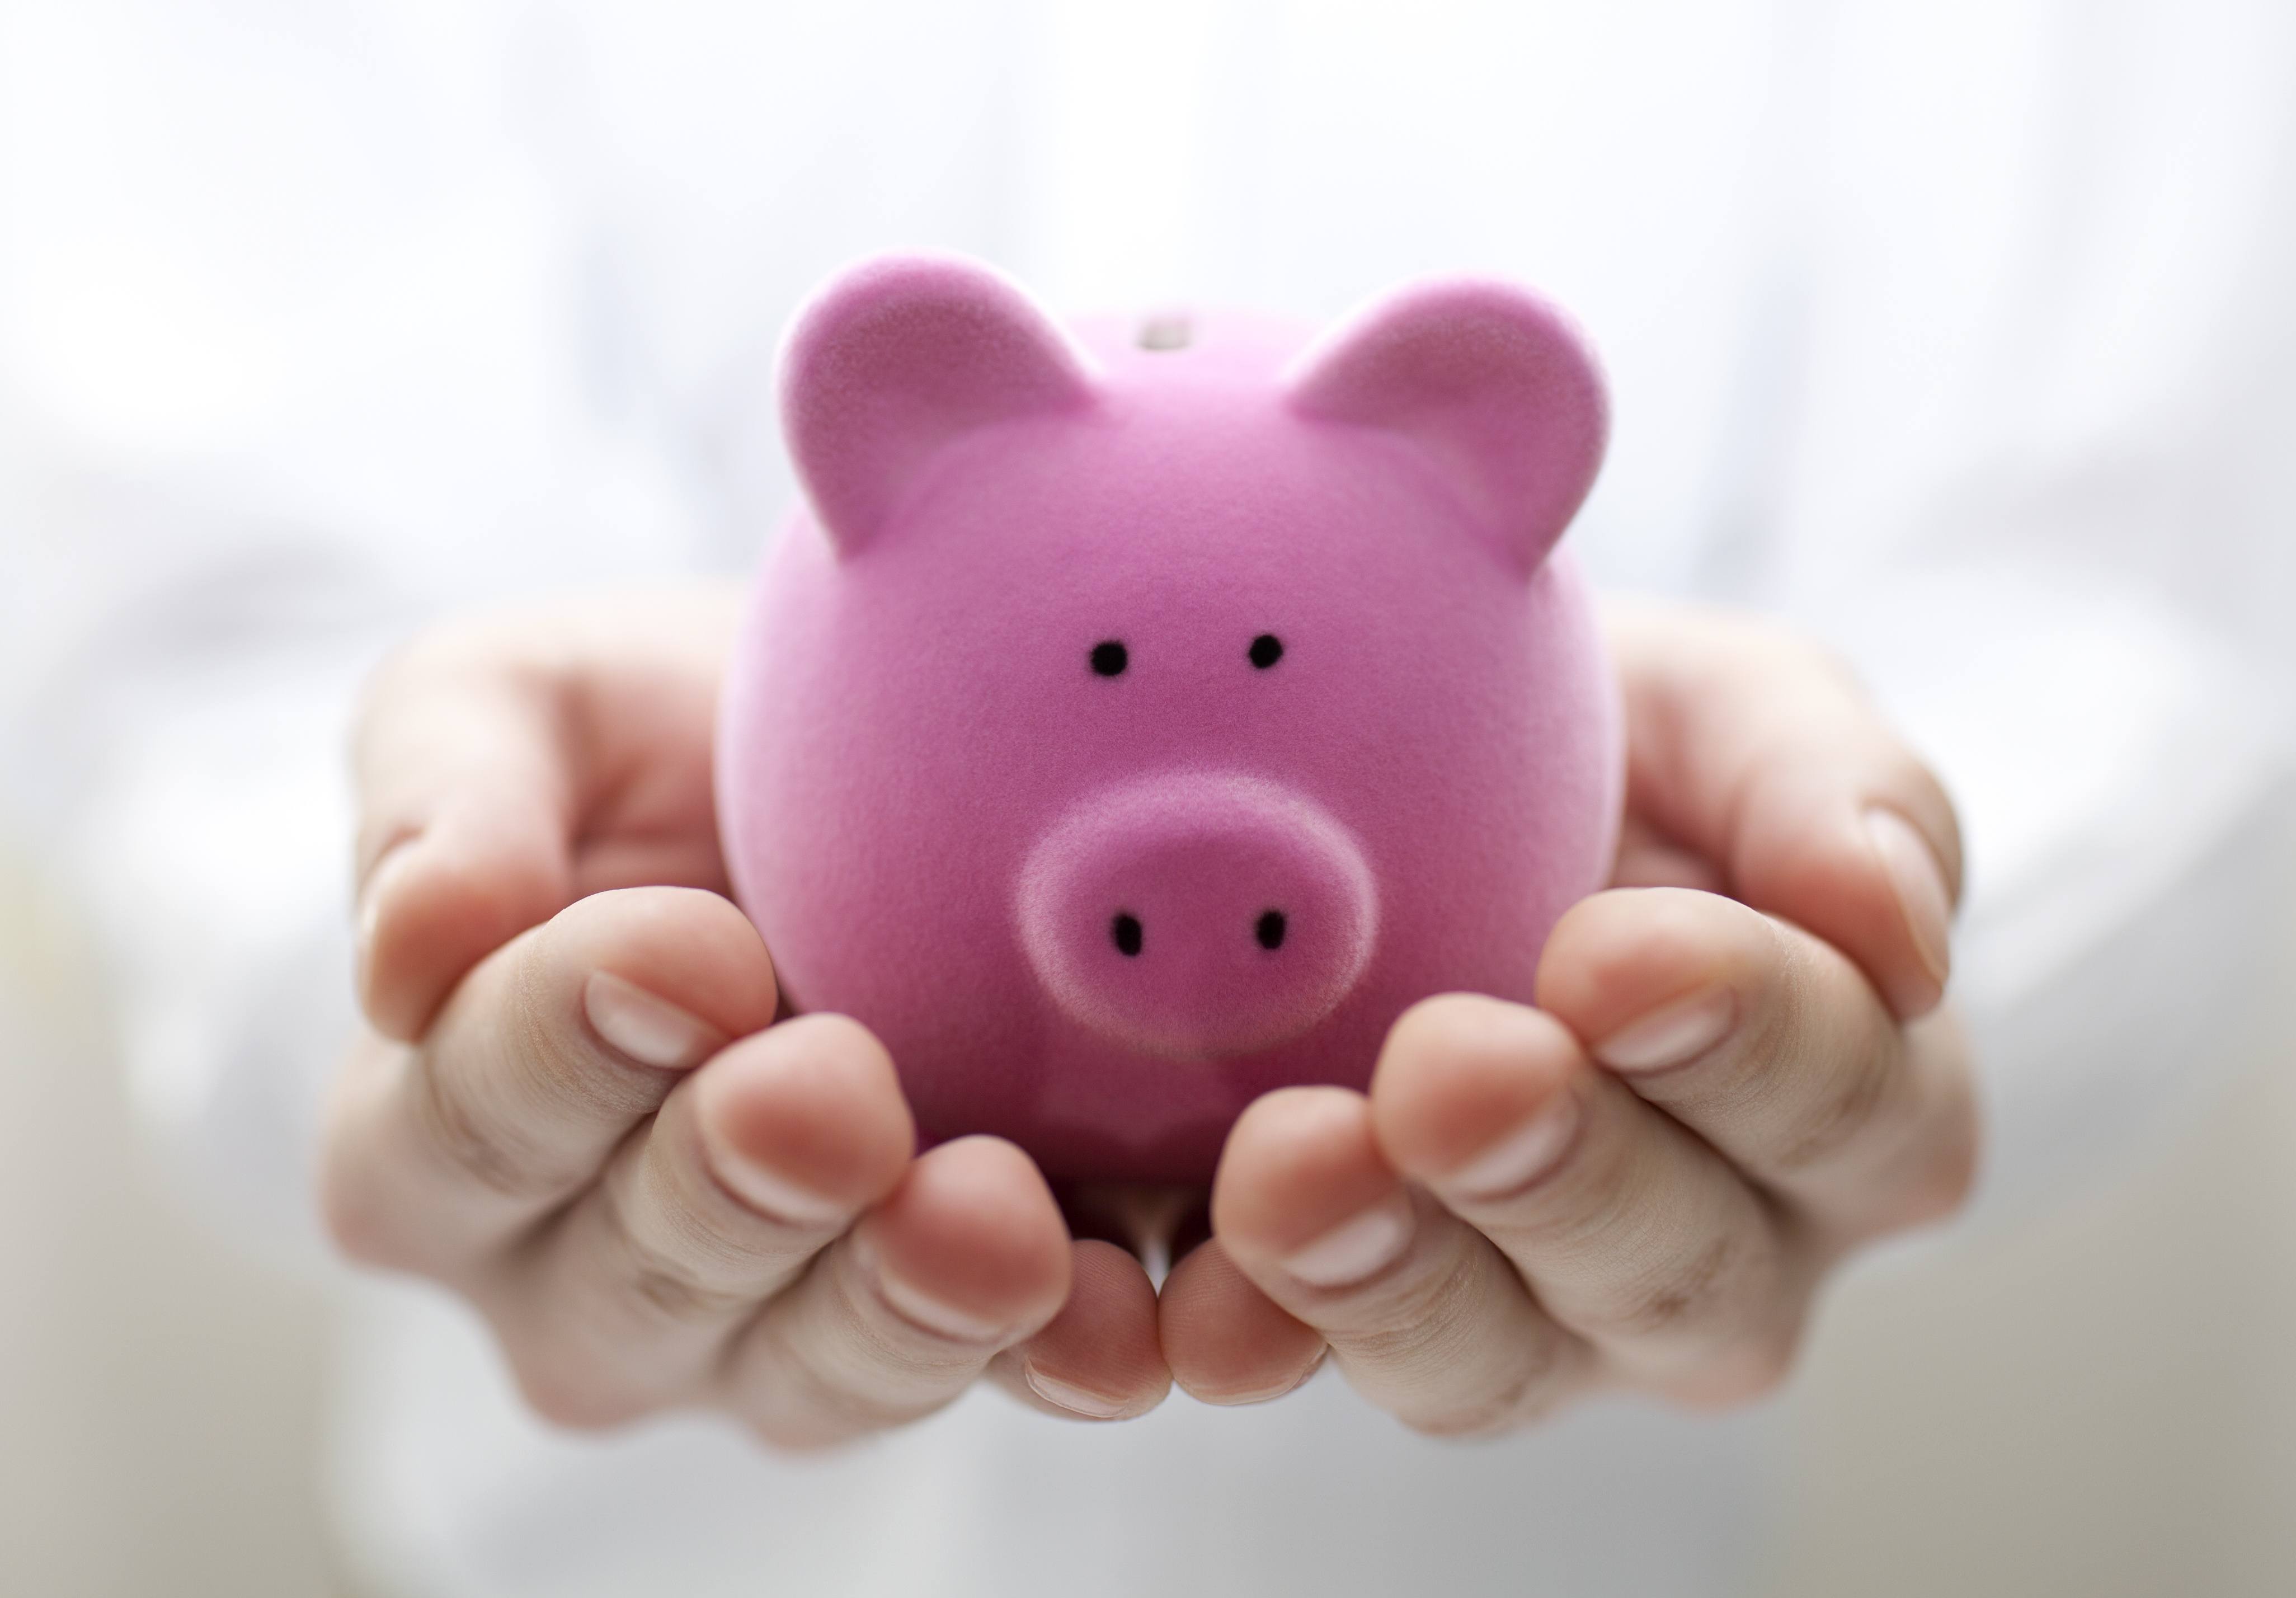 Aug 16, · Saving money doesn't have to be hard. In fact, there are many ways to save money that are easy and fun. Here are more than 90 painless ways to save money.